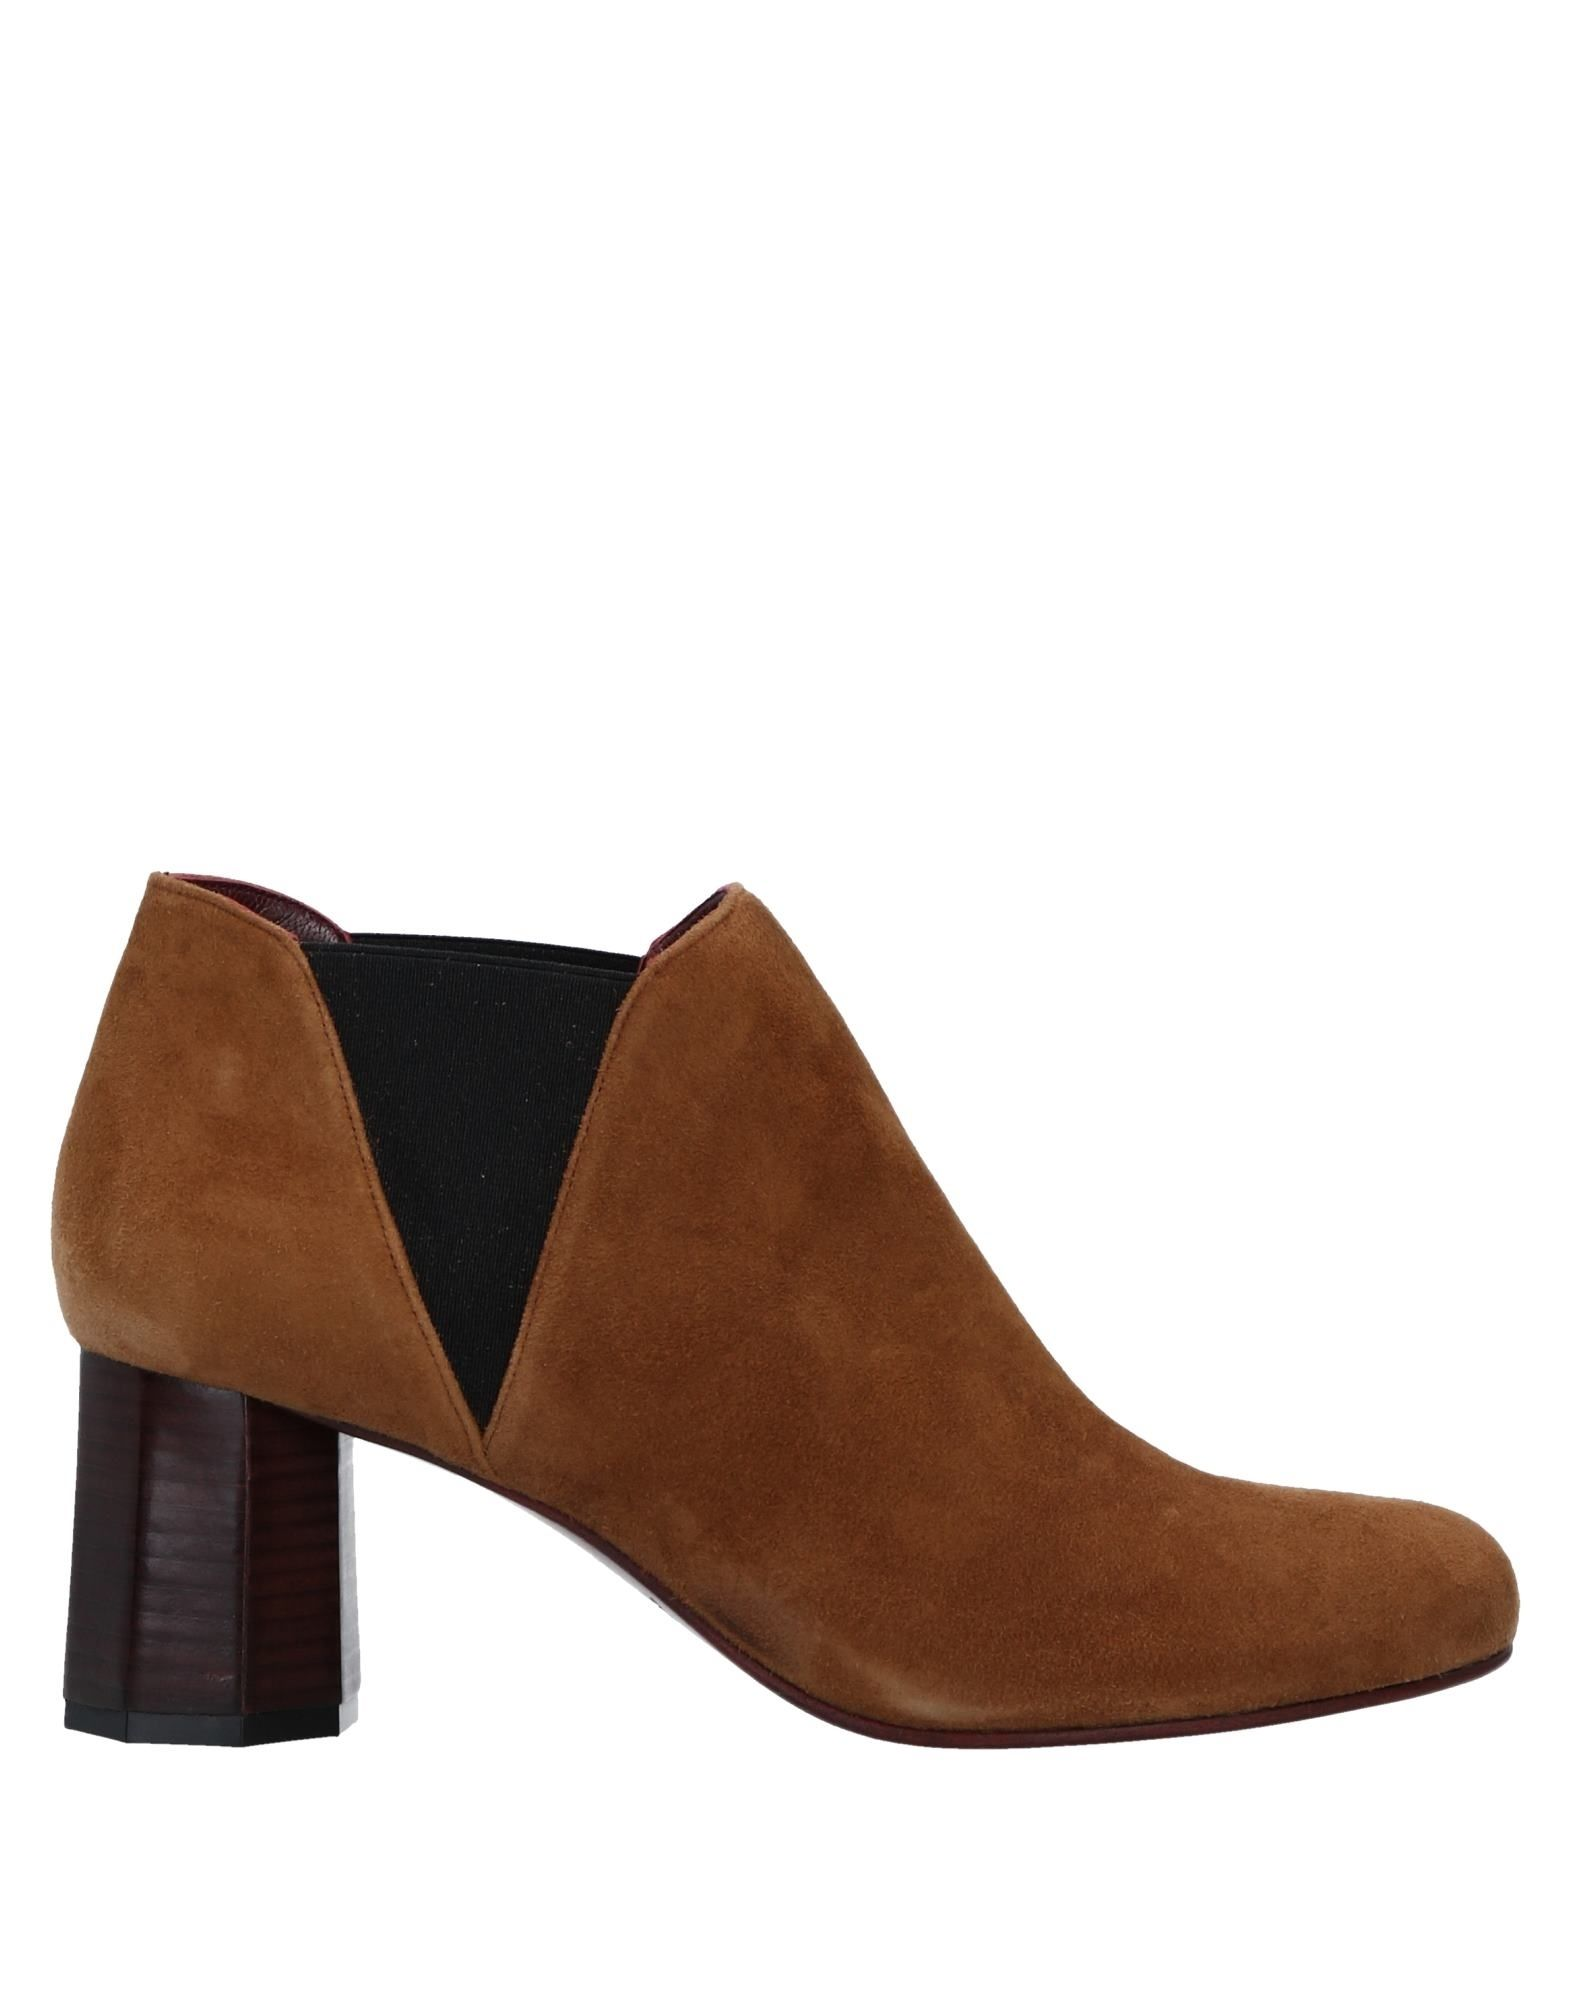 AVRIL GAU Ankle Boots in Camel